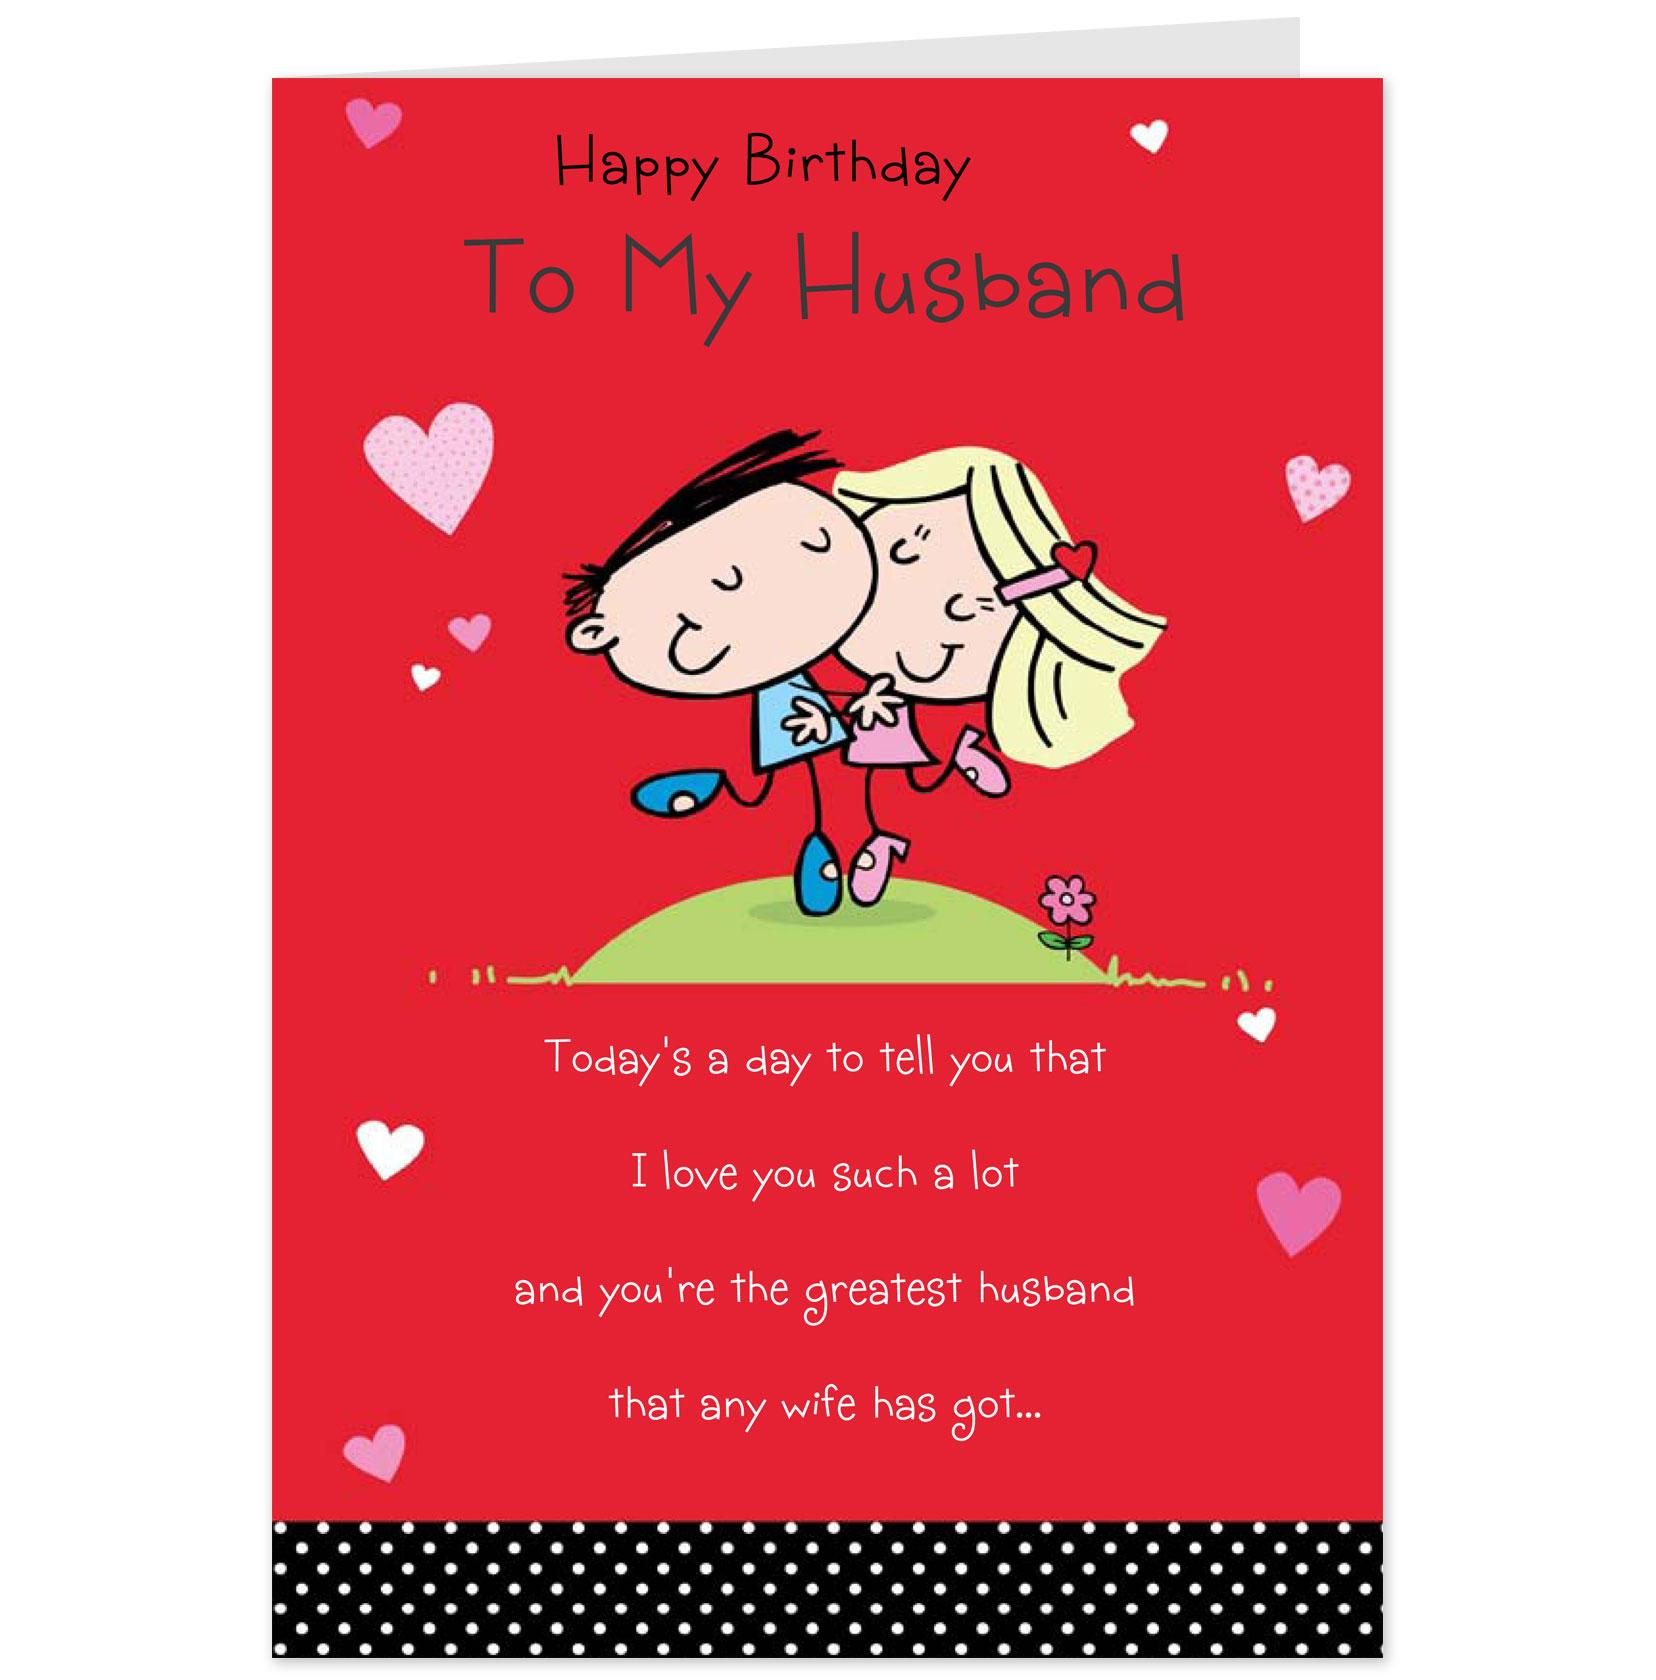 birthday greeting cards for husband images ; d976e76bd217114ec5cc11be8af674a2